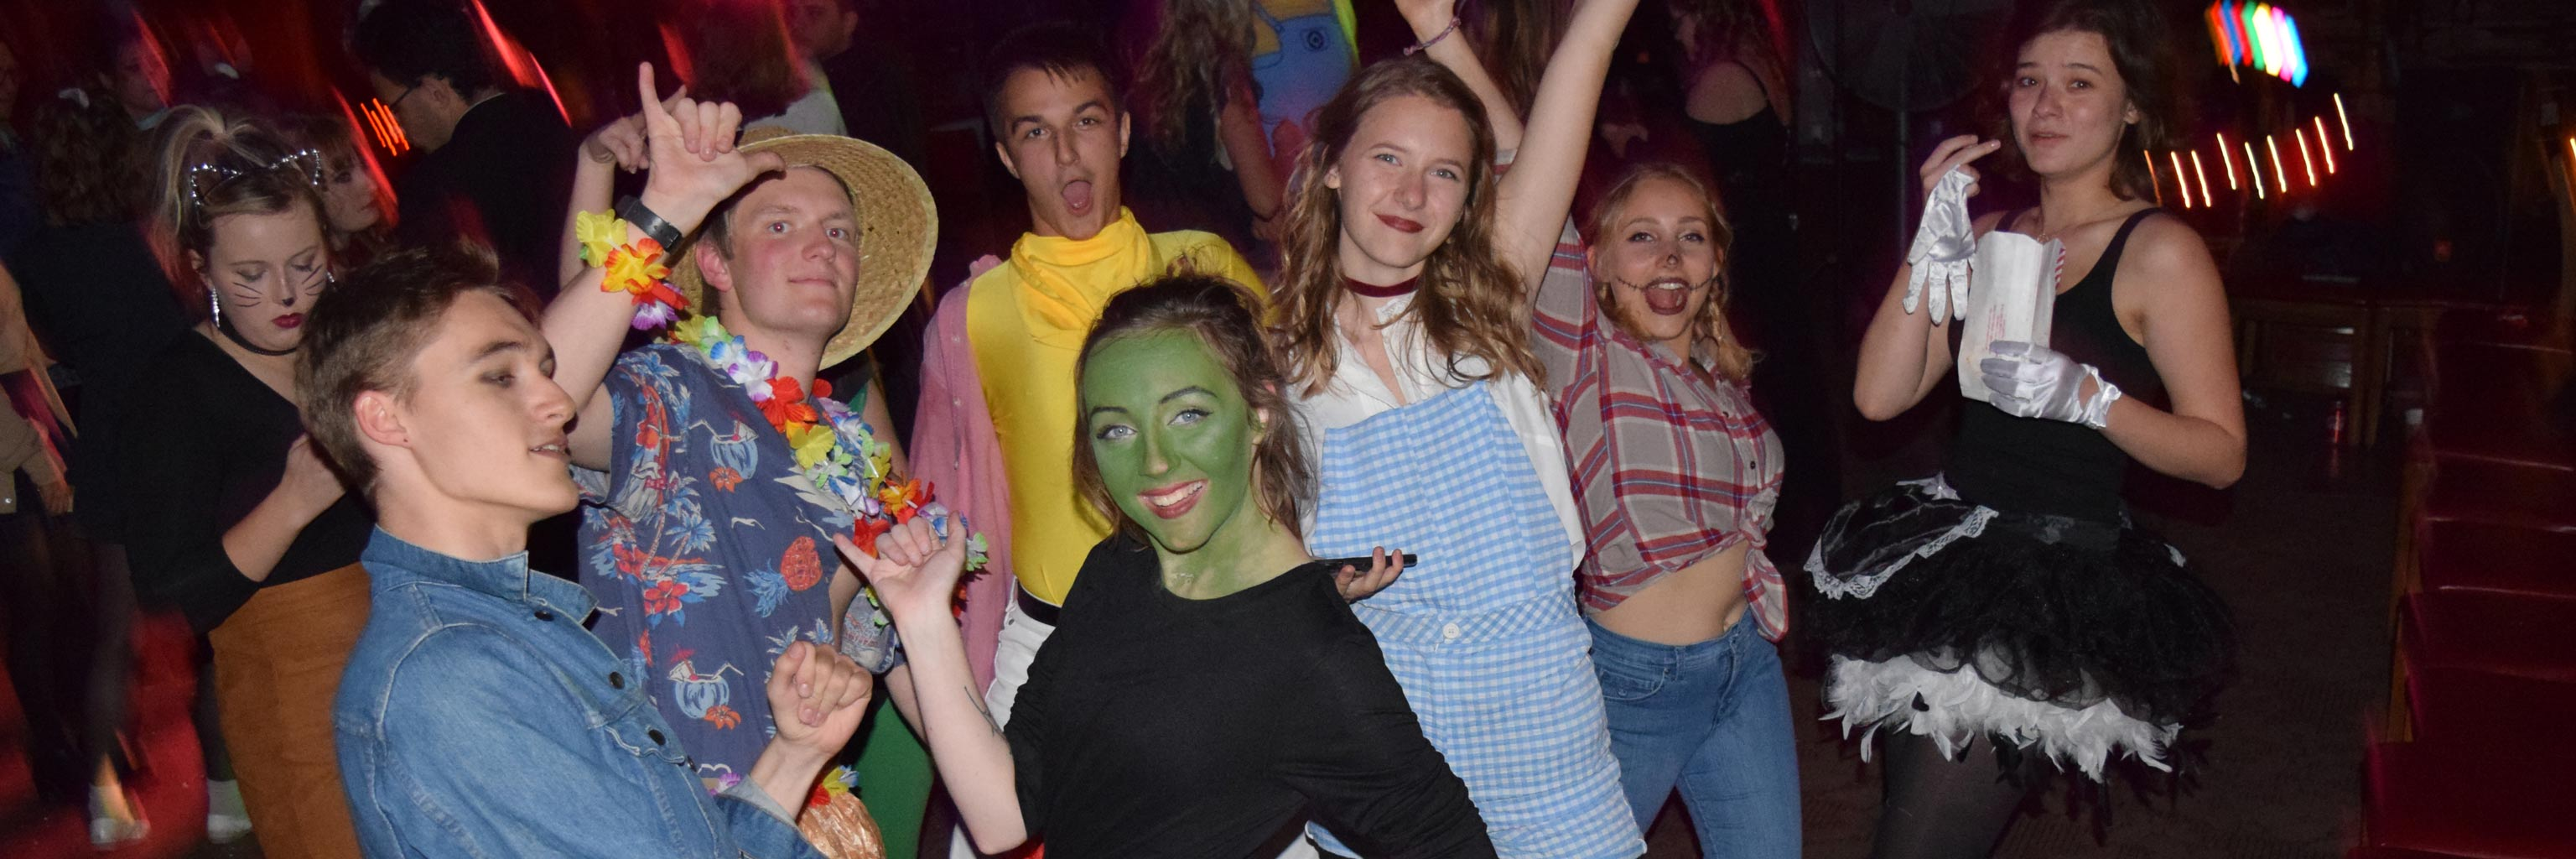 A group of students dance and pose for the camera at a costume party